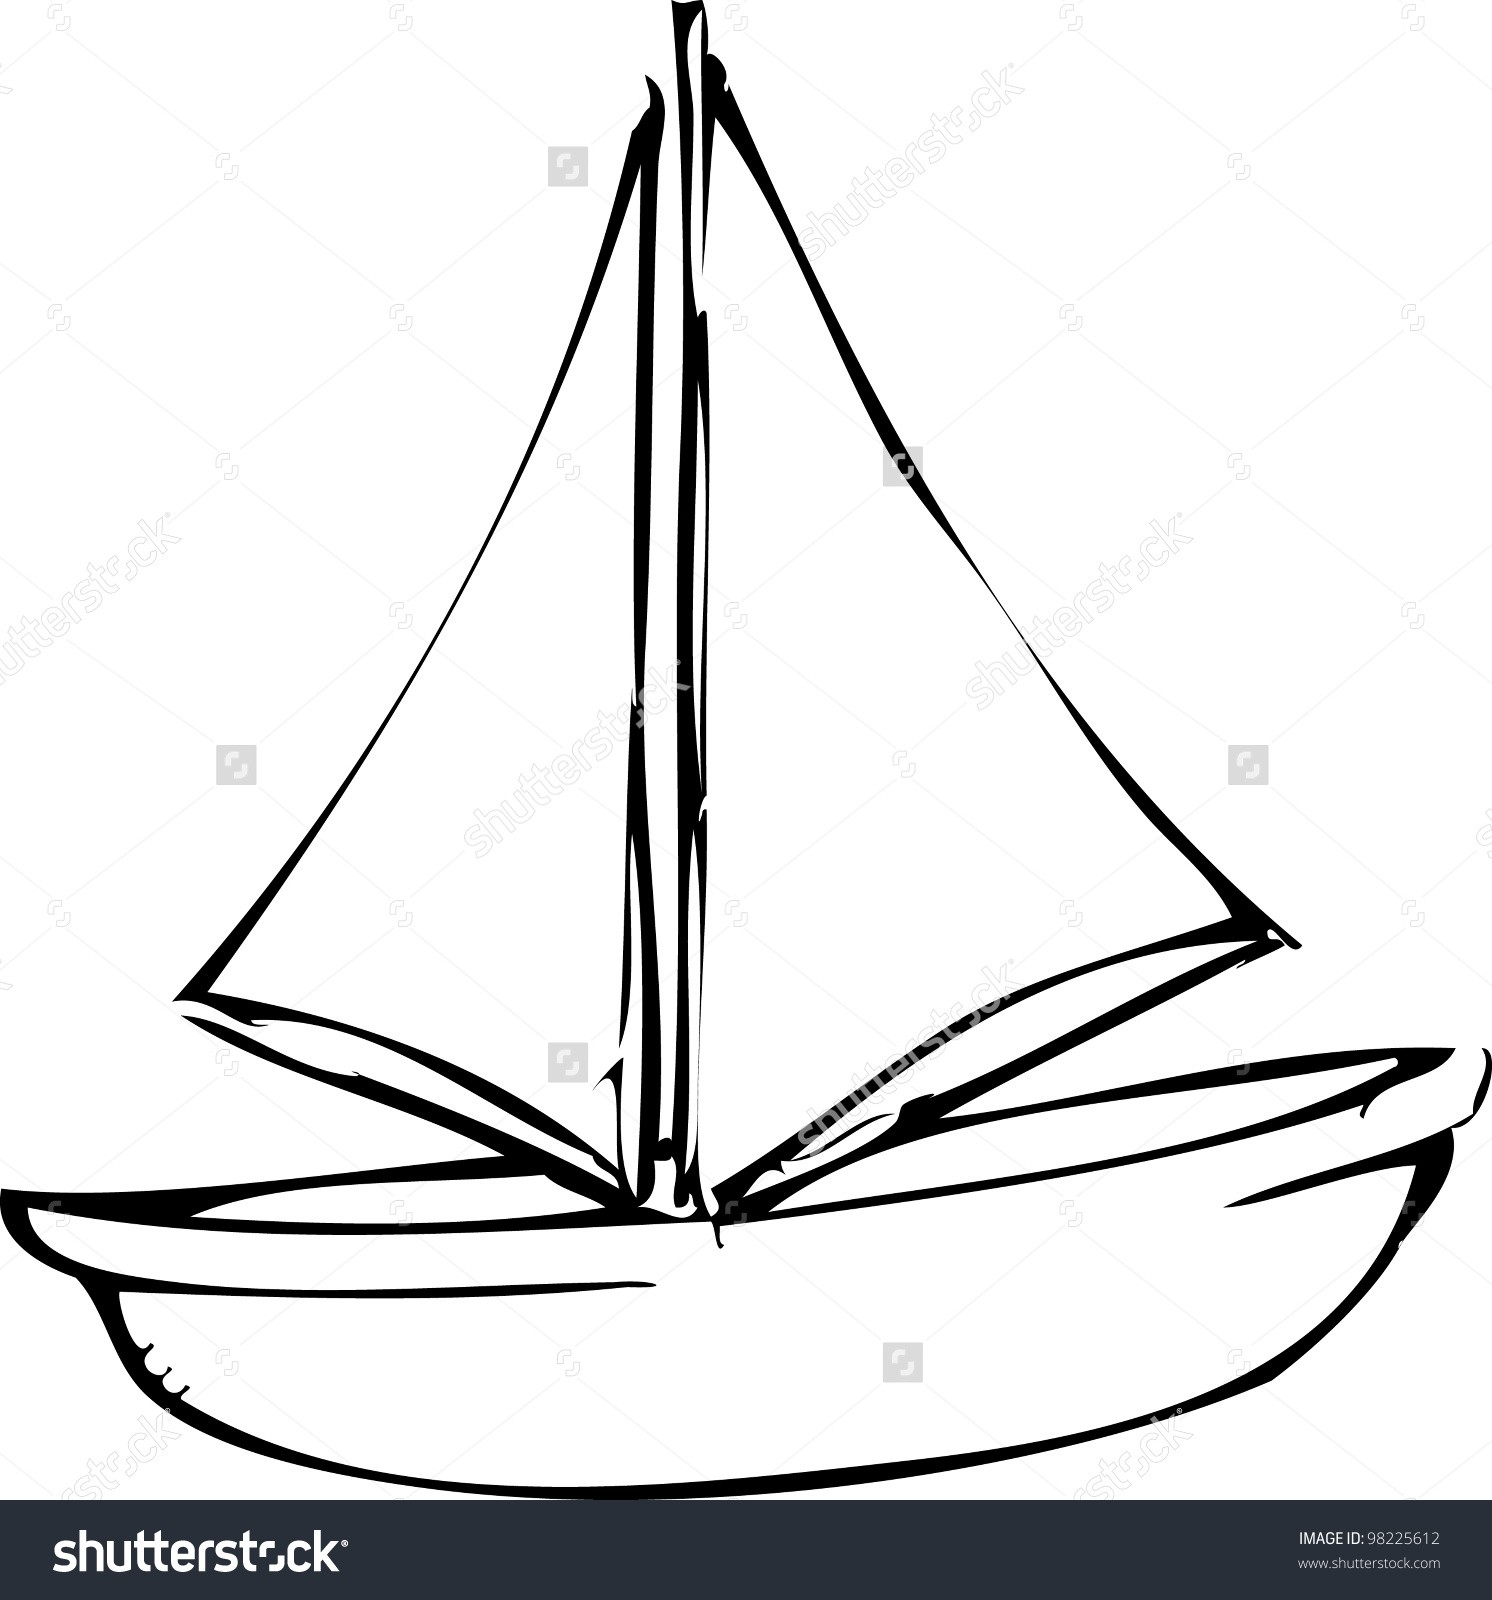 1492x1600 boat drawing save boat drawing simple drawing boat drawing sketch